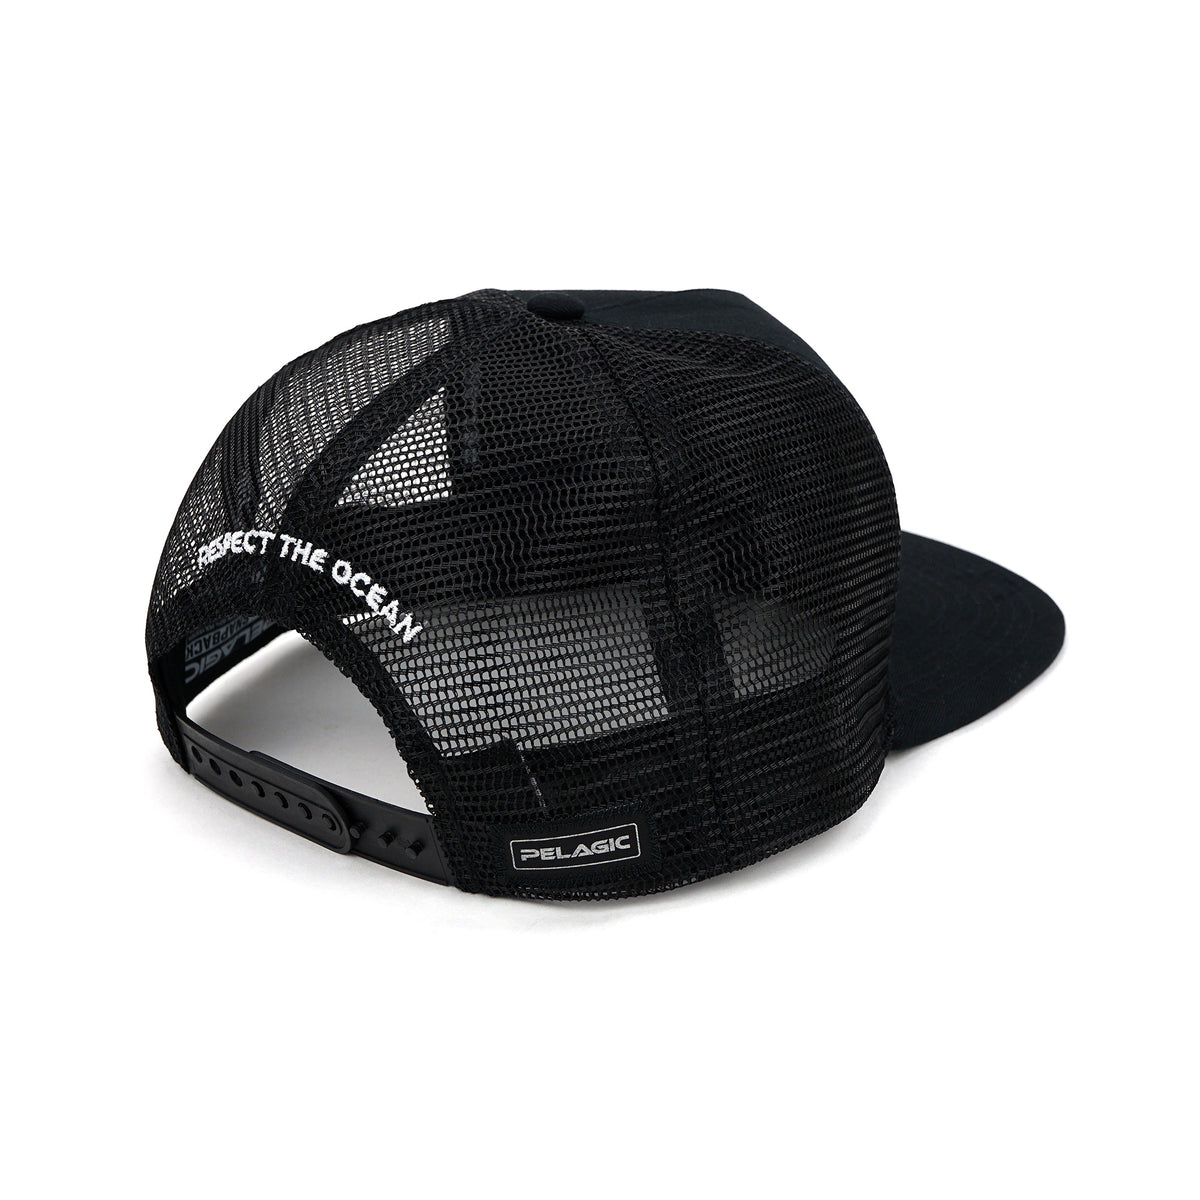 Stick Figure Snapback Black Big Image - 5